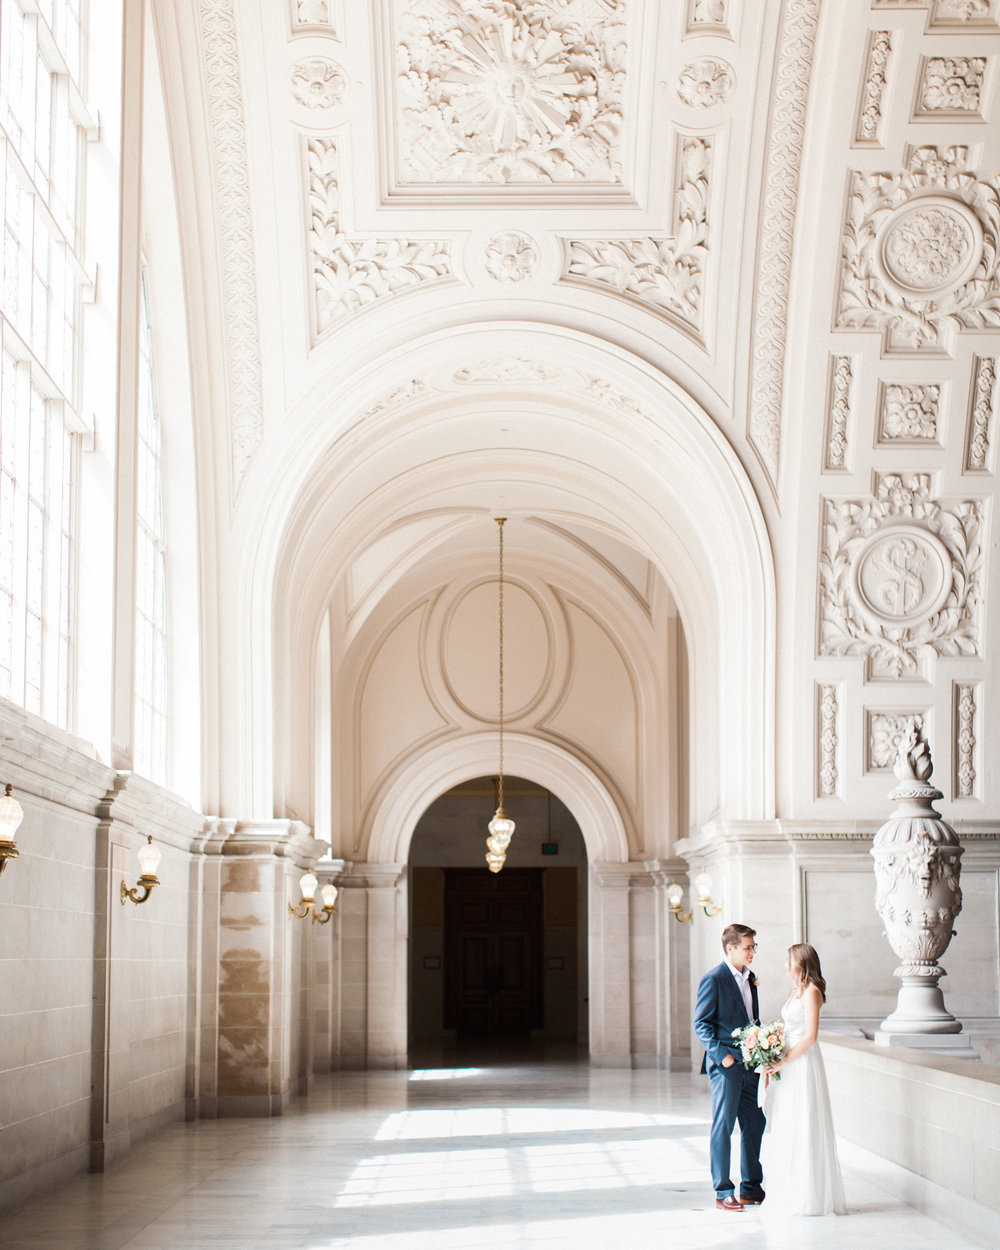 Brandon Sampson Photography. San Francisco City Hall Wedding Portrait. Film Photography.